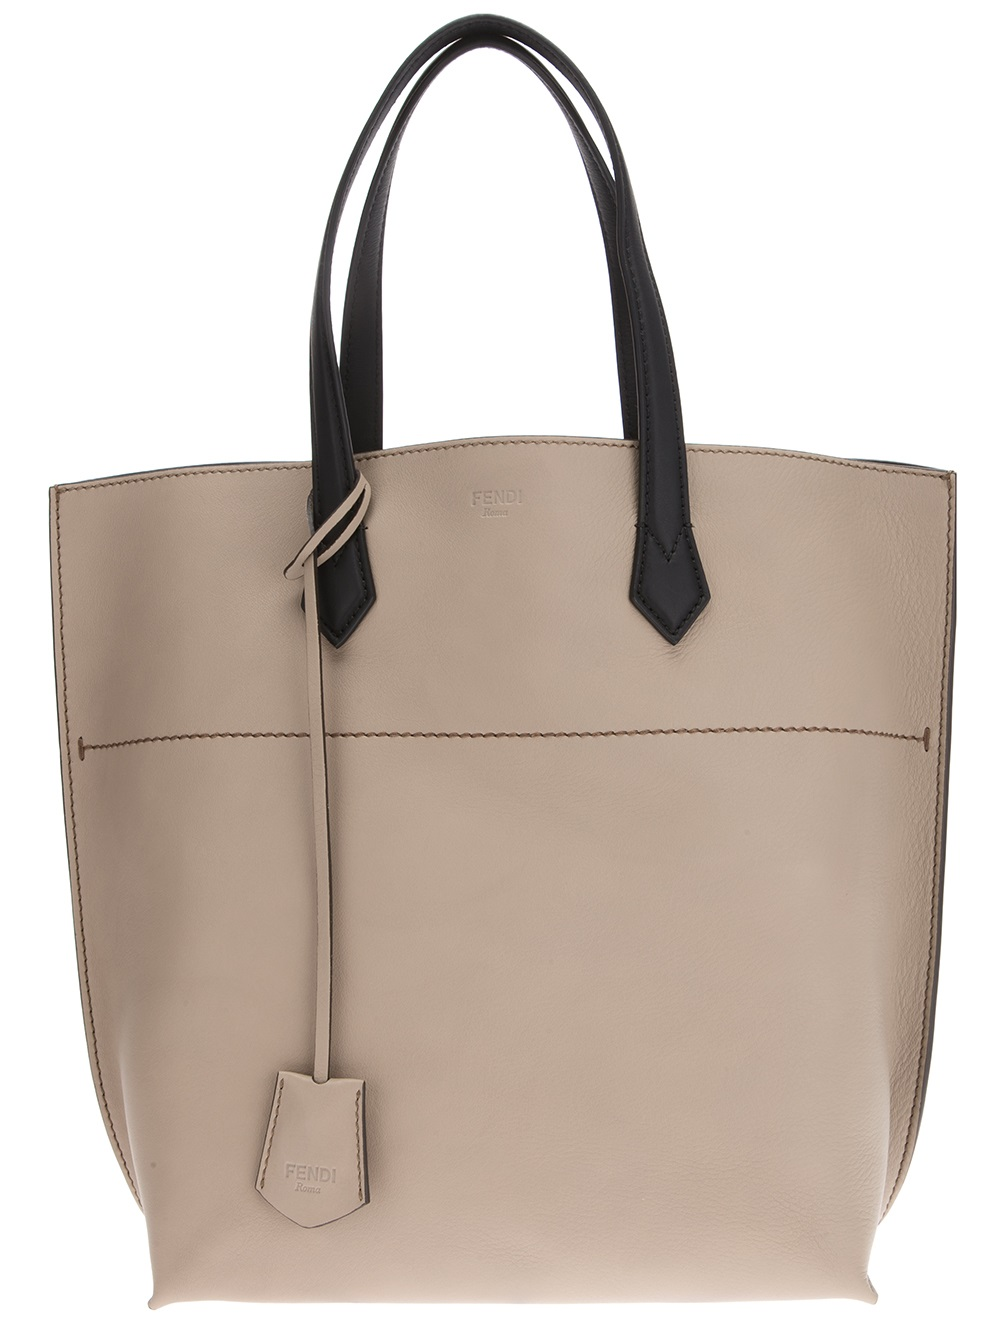 Fendi Shopper Bag in Gray (grey) | Lyst